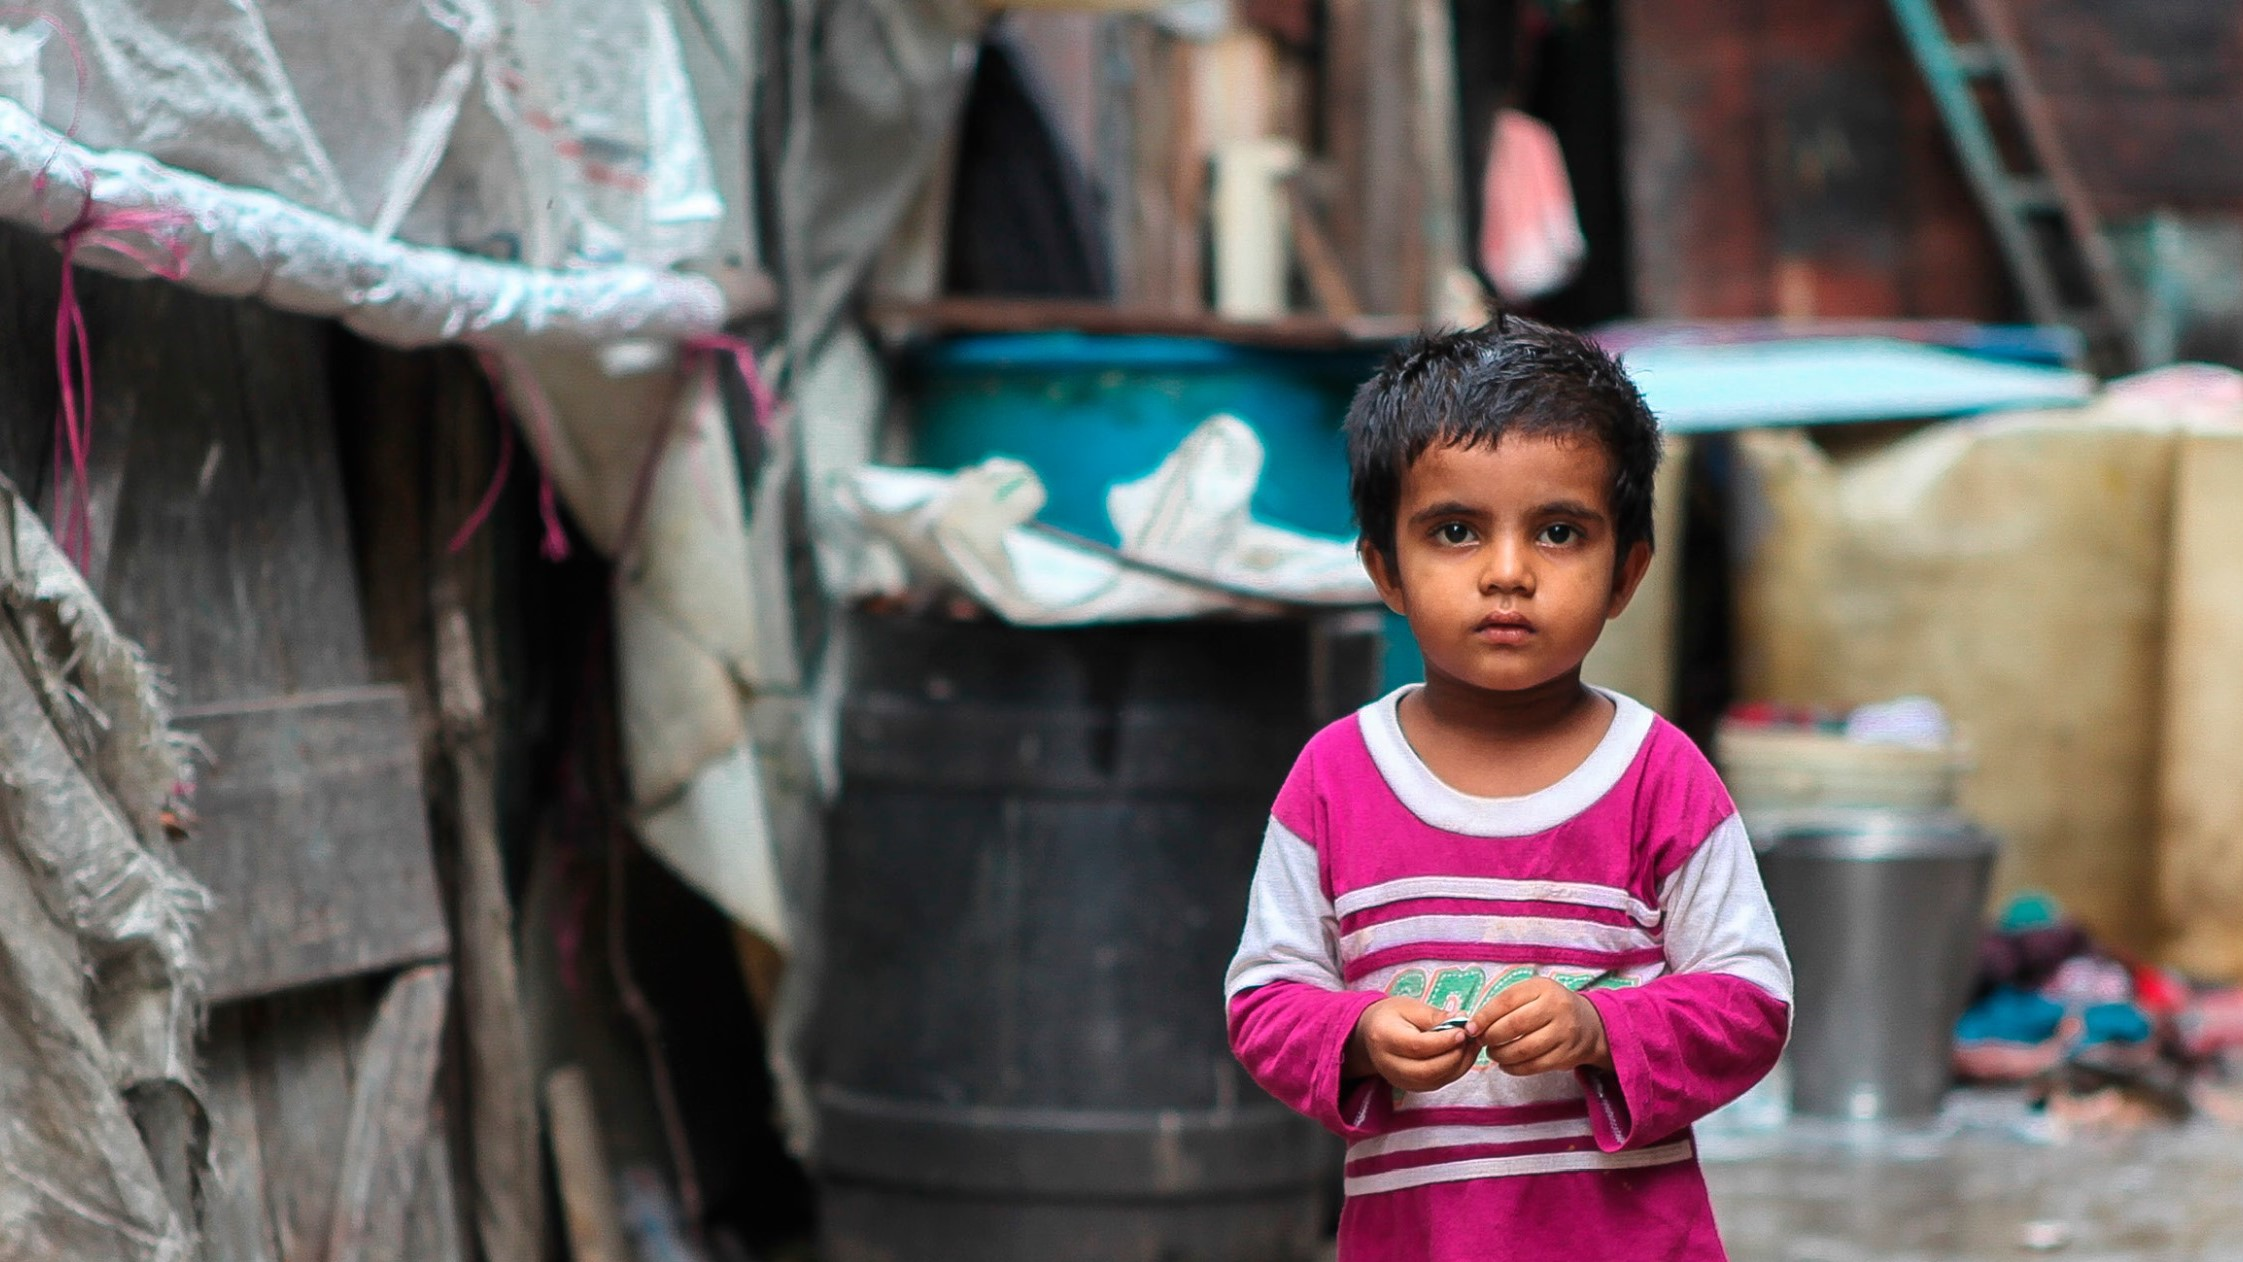 COVID-19 in India orphaning thousands of children